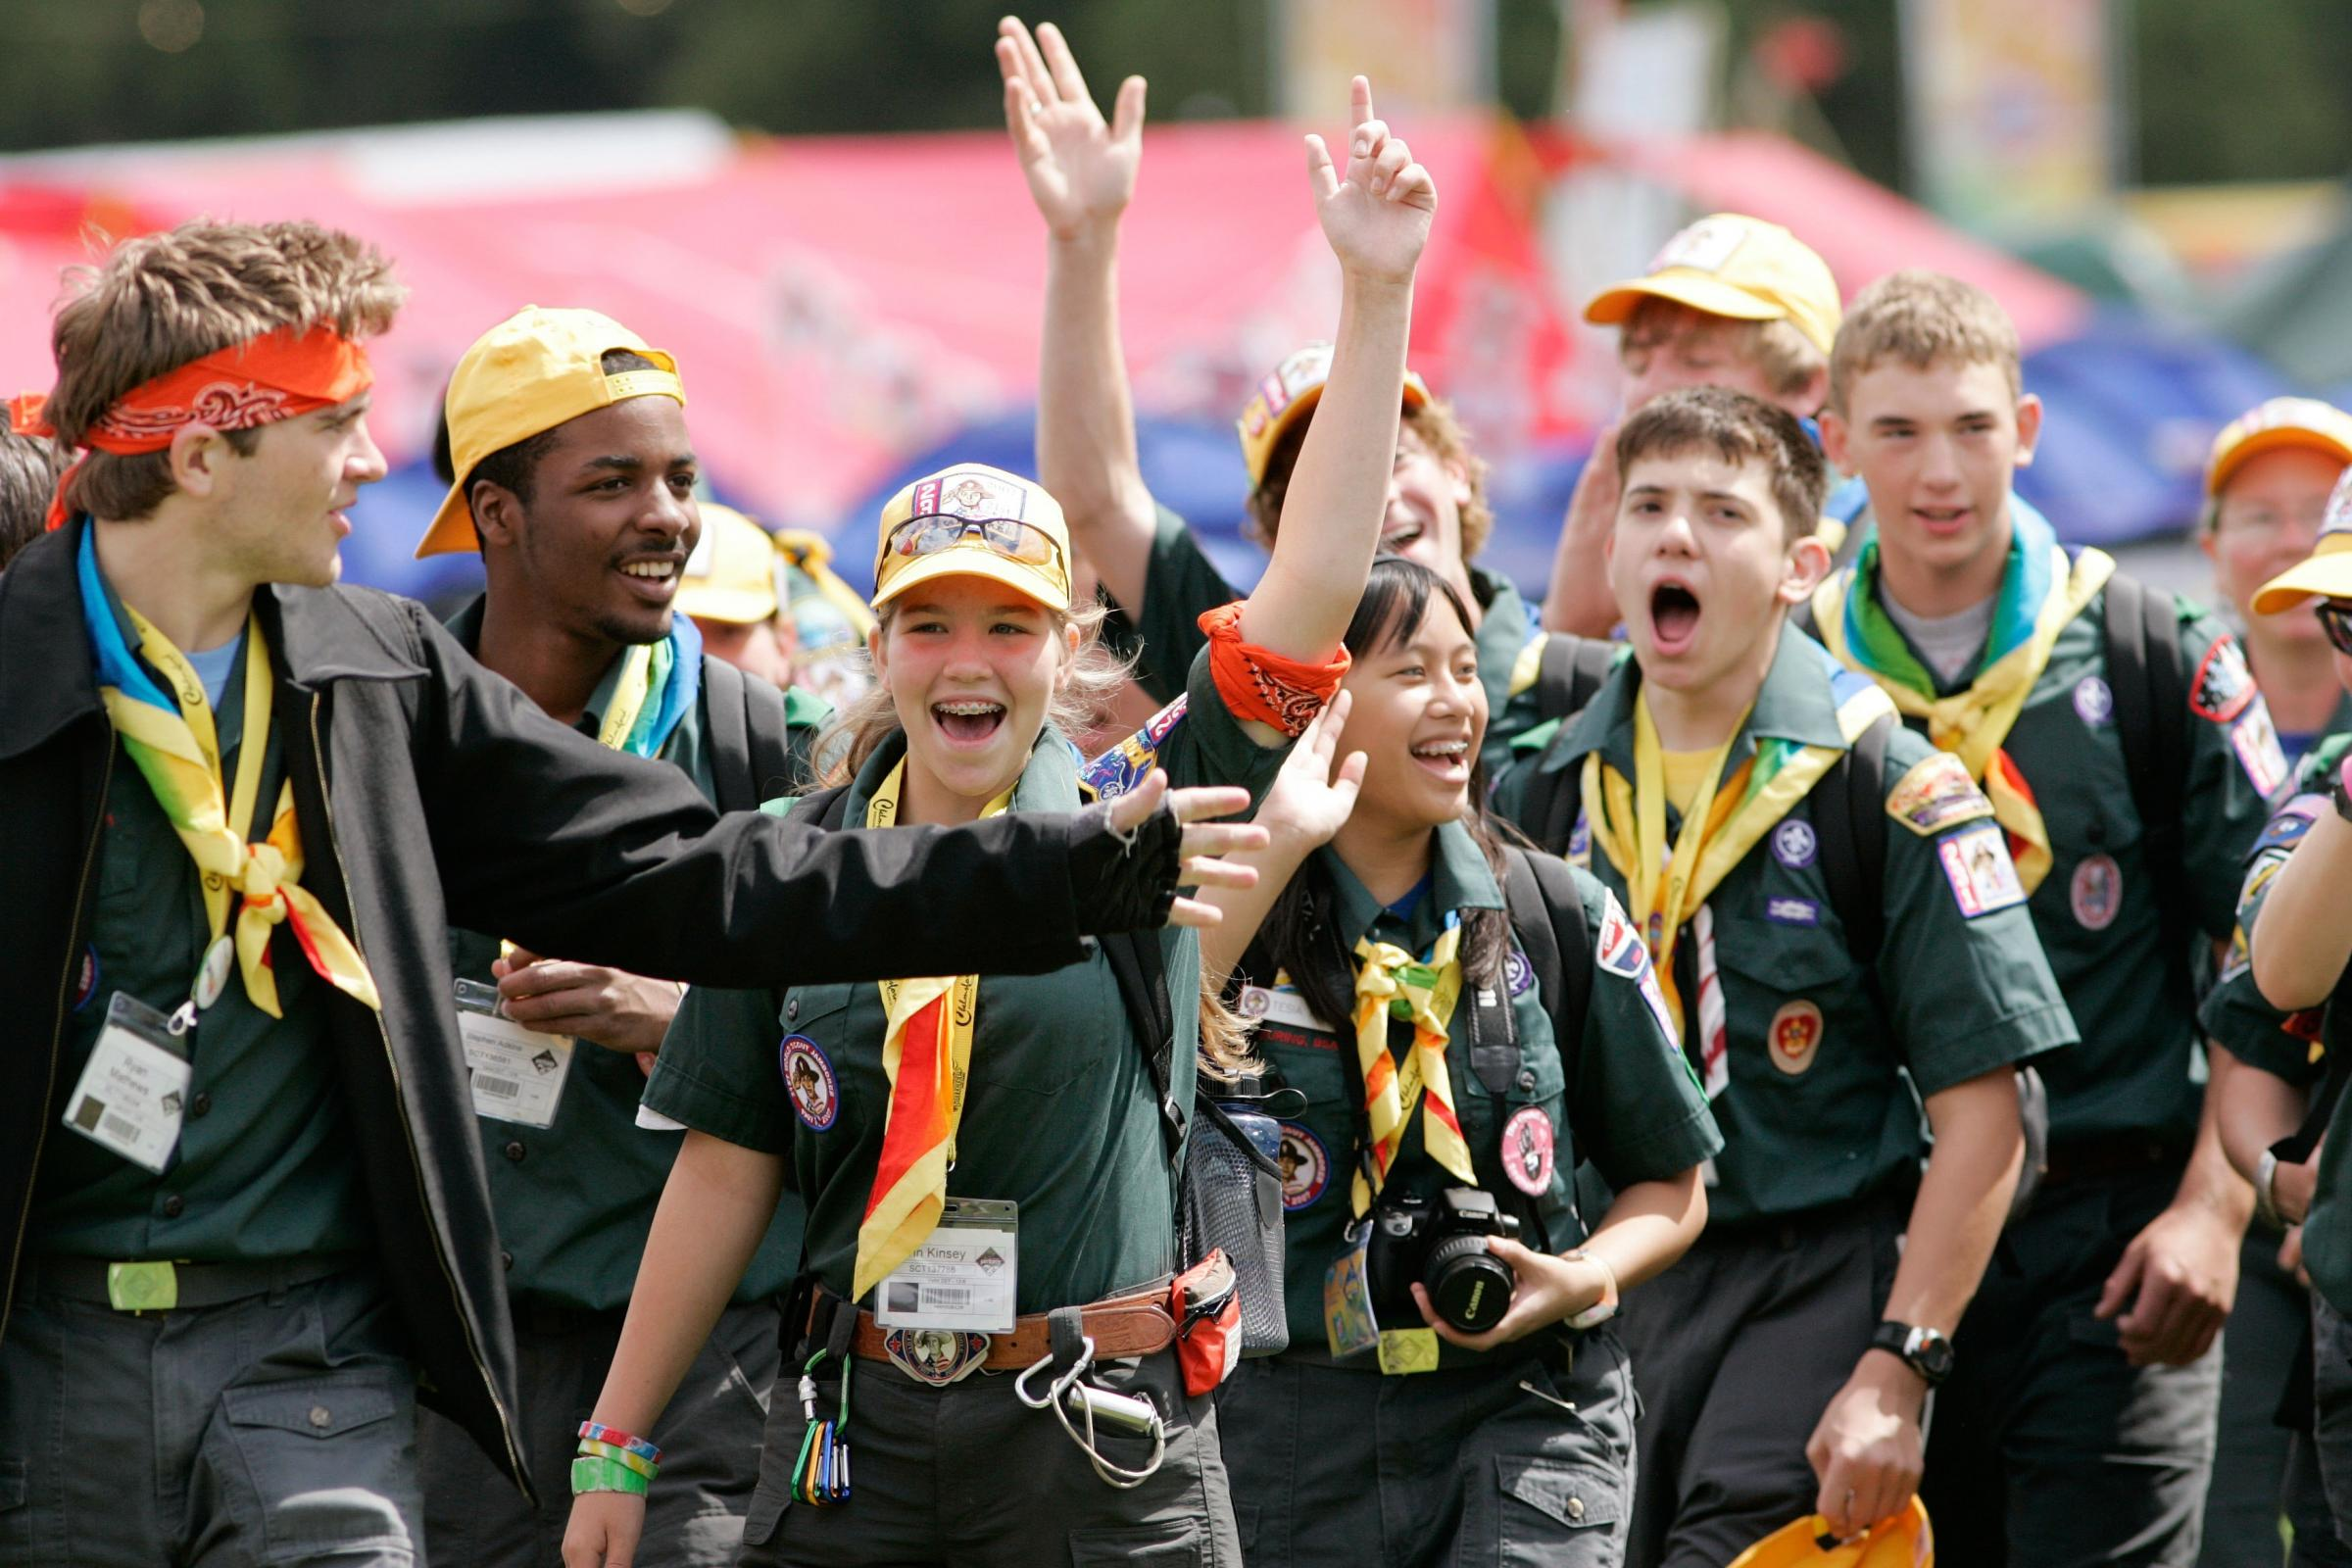 Scouting aims to build a range of skills including leadership